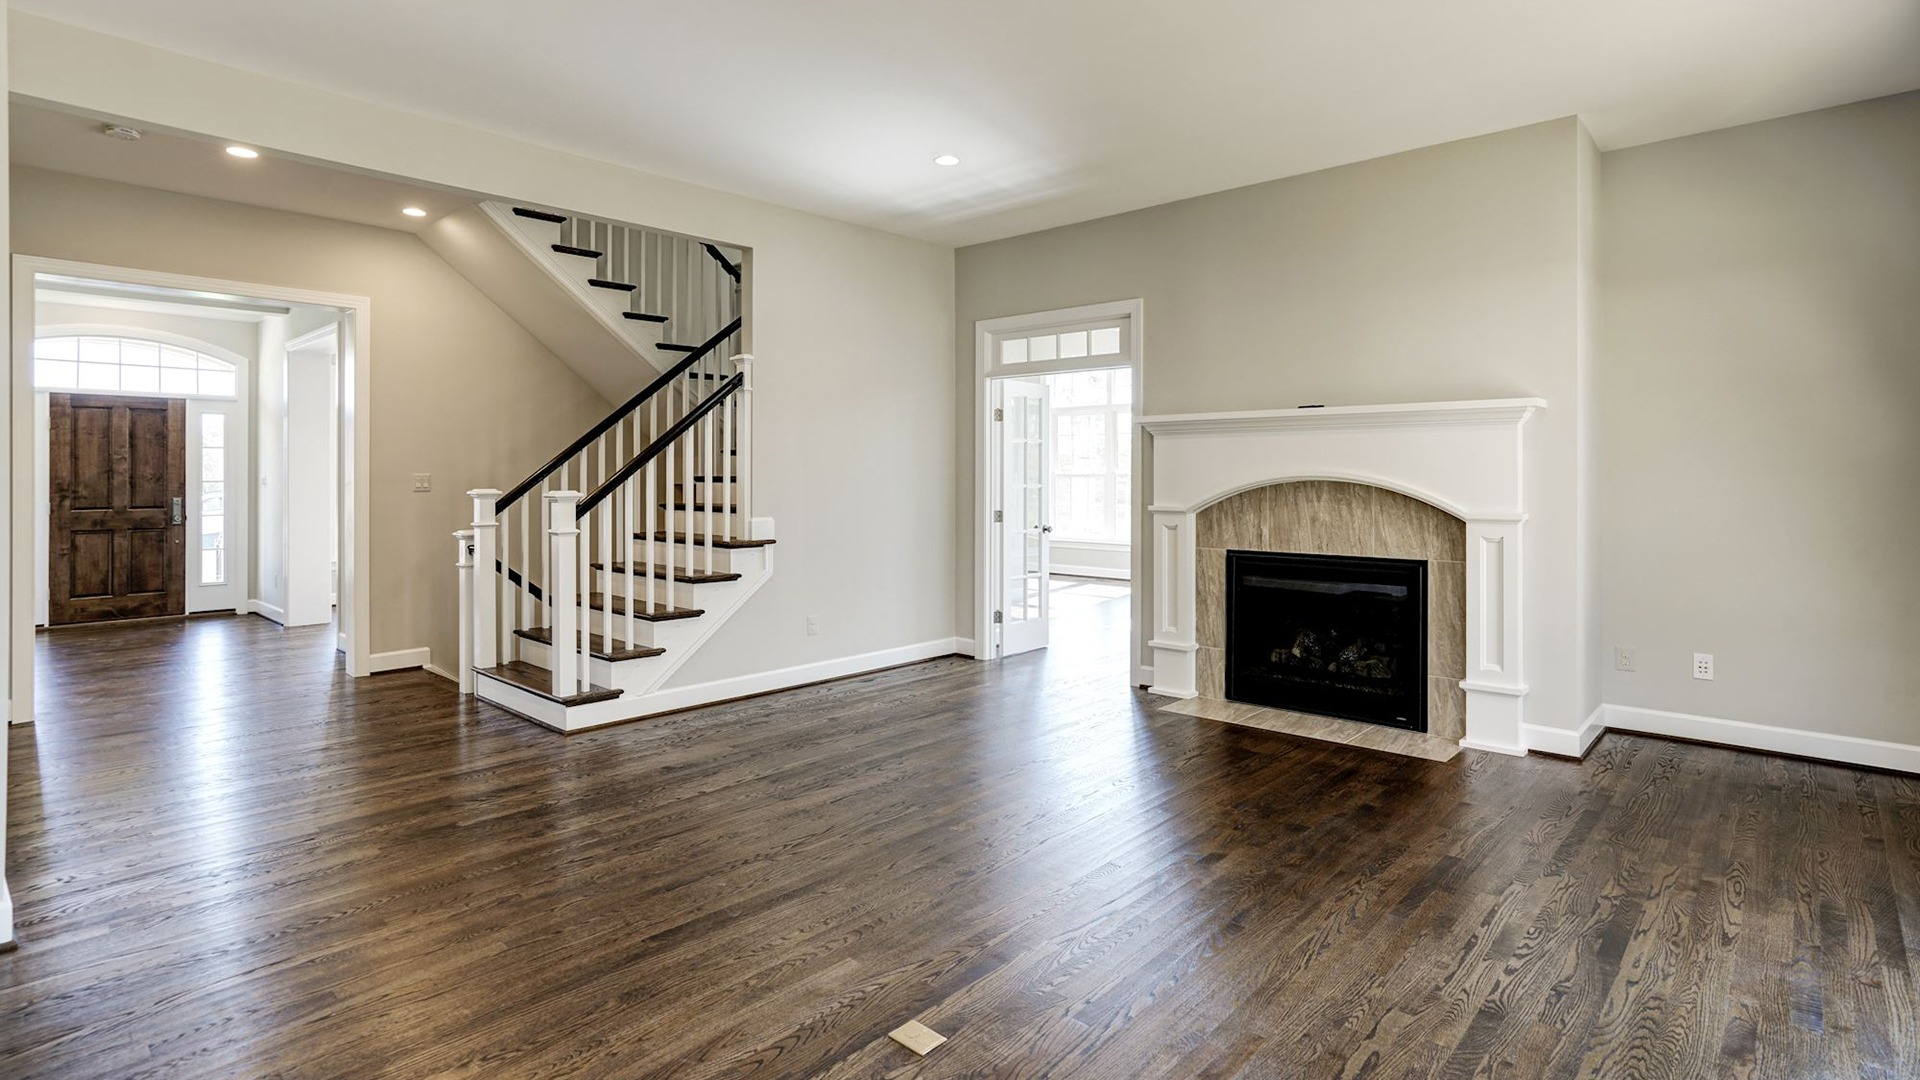 The Family Room in the Grayson on Fallsgate Homesite 4. Some optional features shown.